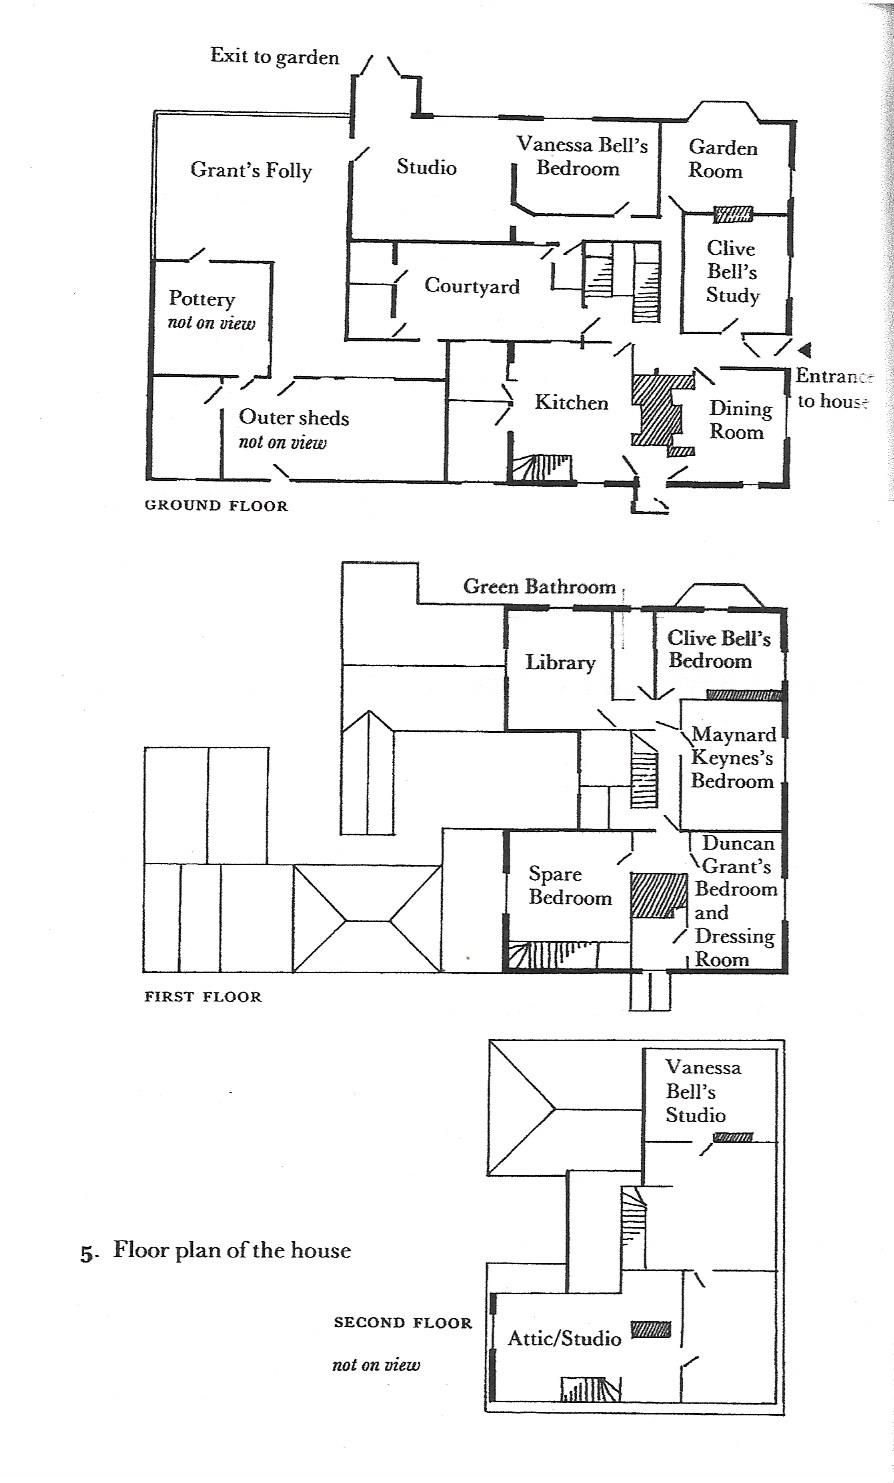 Floor Plan Of House From Charleston Past Present Bloomsbury Group House Floor Plans East Sussex